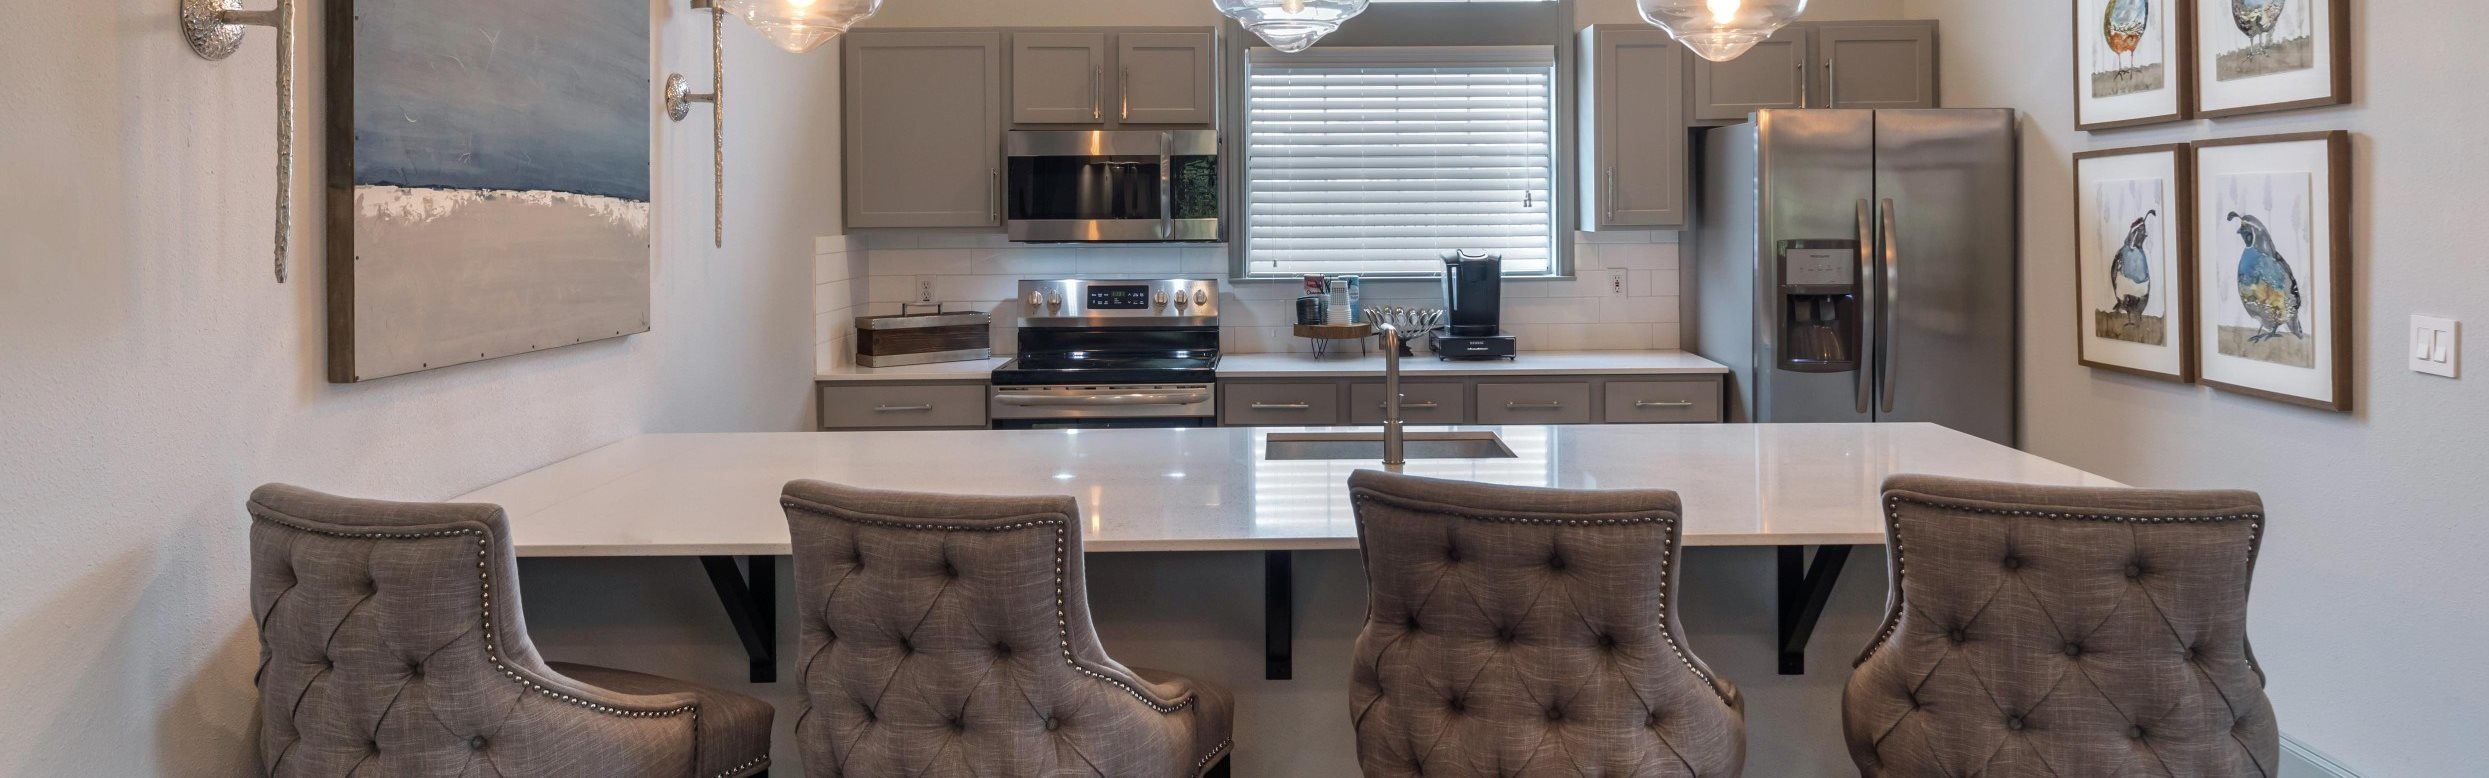 Clubhouse kitchen with modern lights, stainless steel appliances, and decorated walls with photos of birds